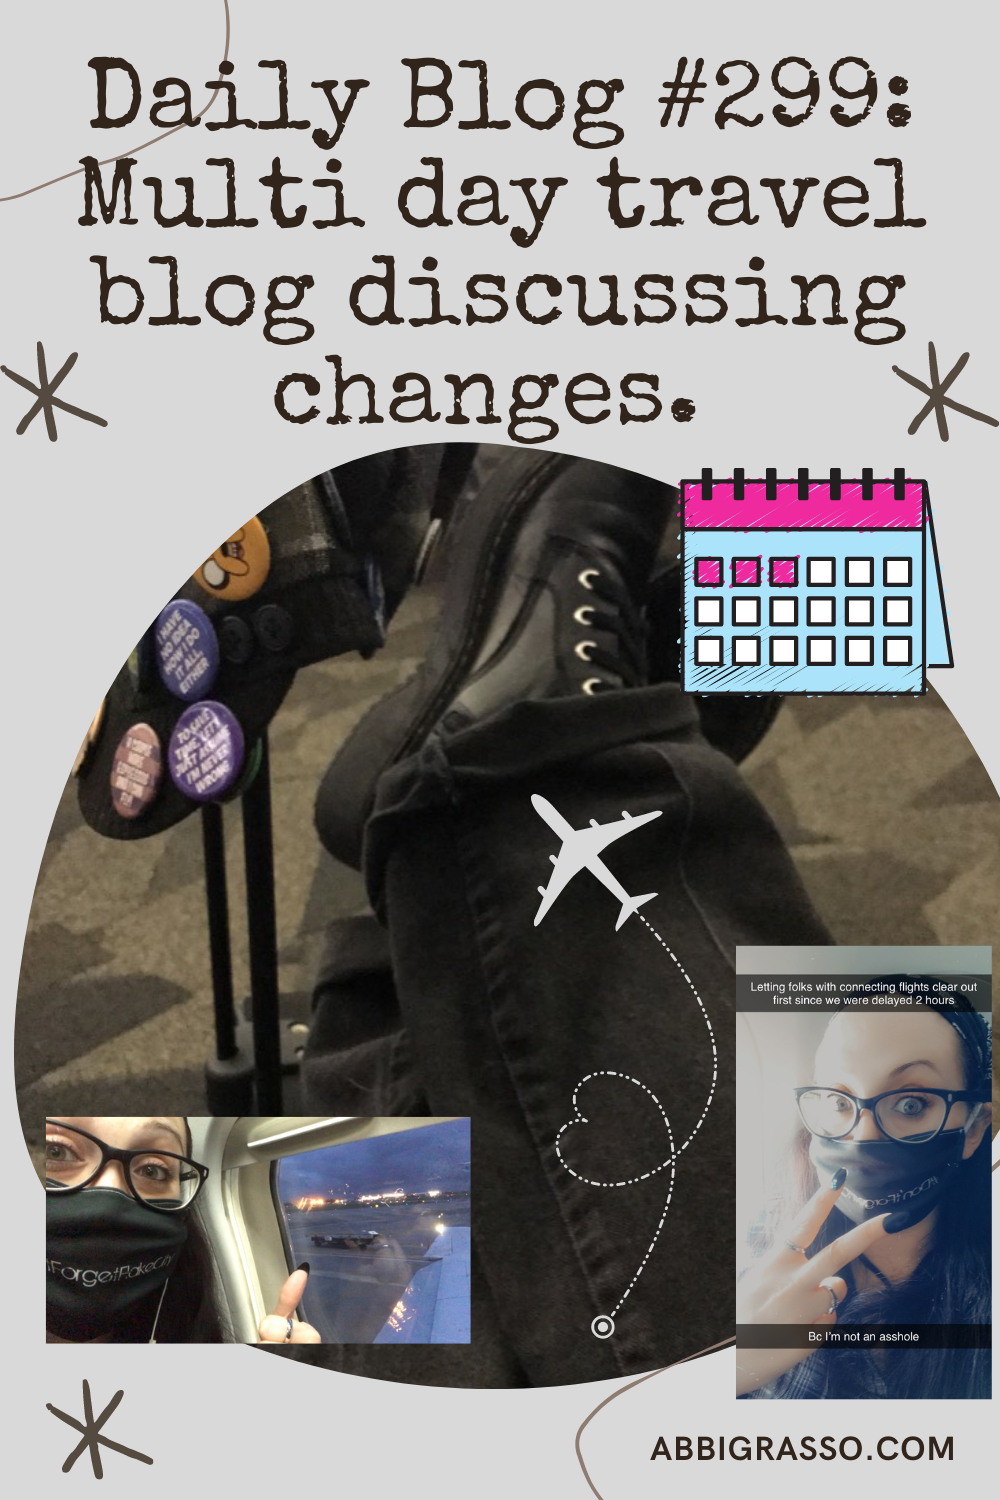 Daily Blog #299: Multi day travel blog discussing changes